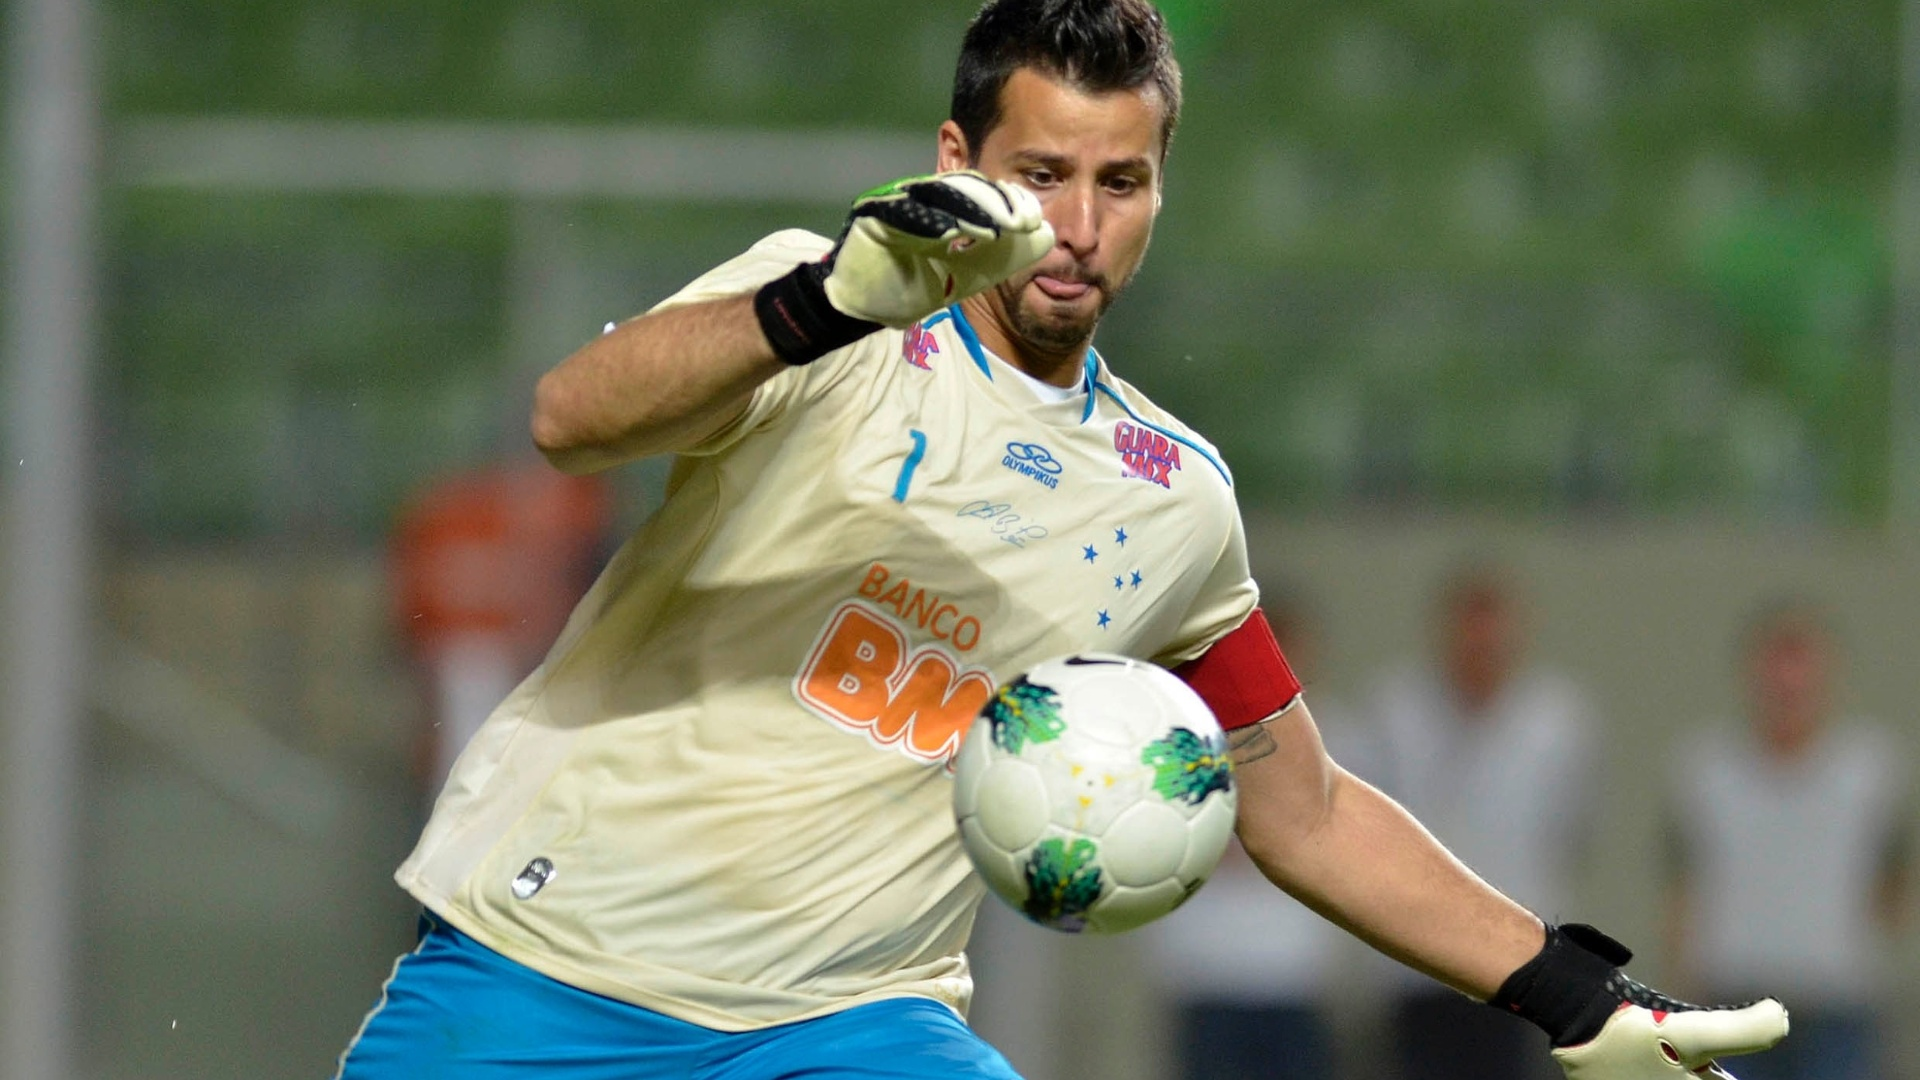 Goleiro Fbio repe a bola em jogo durante partida entre So Paulo e Cruzeiro, pelo Brasileiro